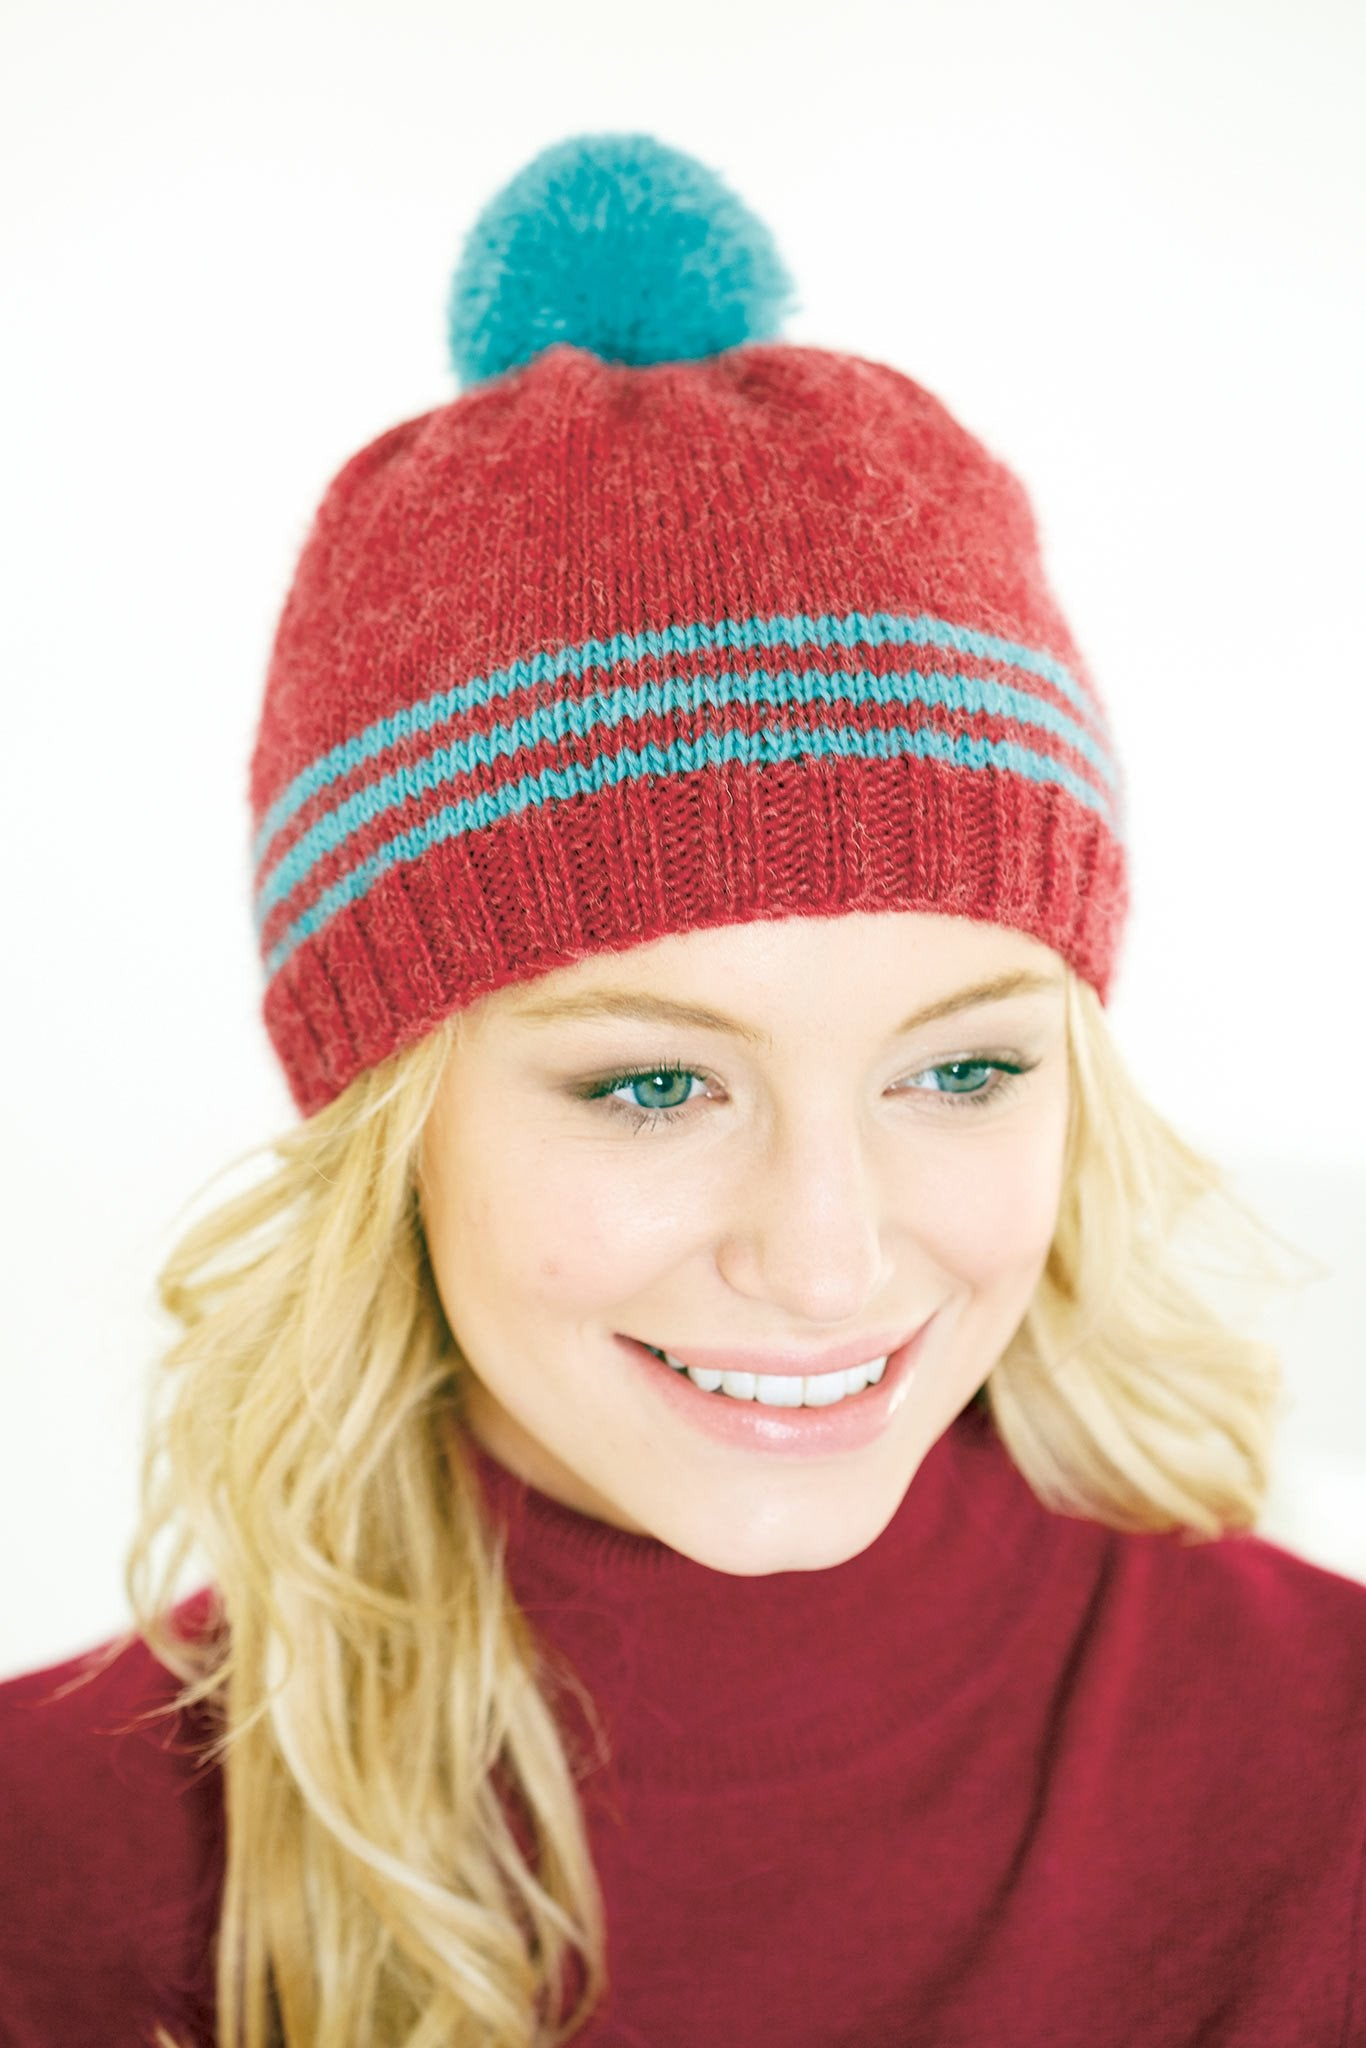 Ladies hat with stripes and pompom knitting pattern the knitting ladies hat with stripes and pompom knitting pattern bankloansurffo Gallery